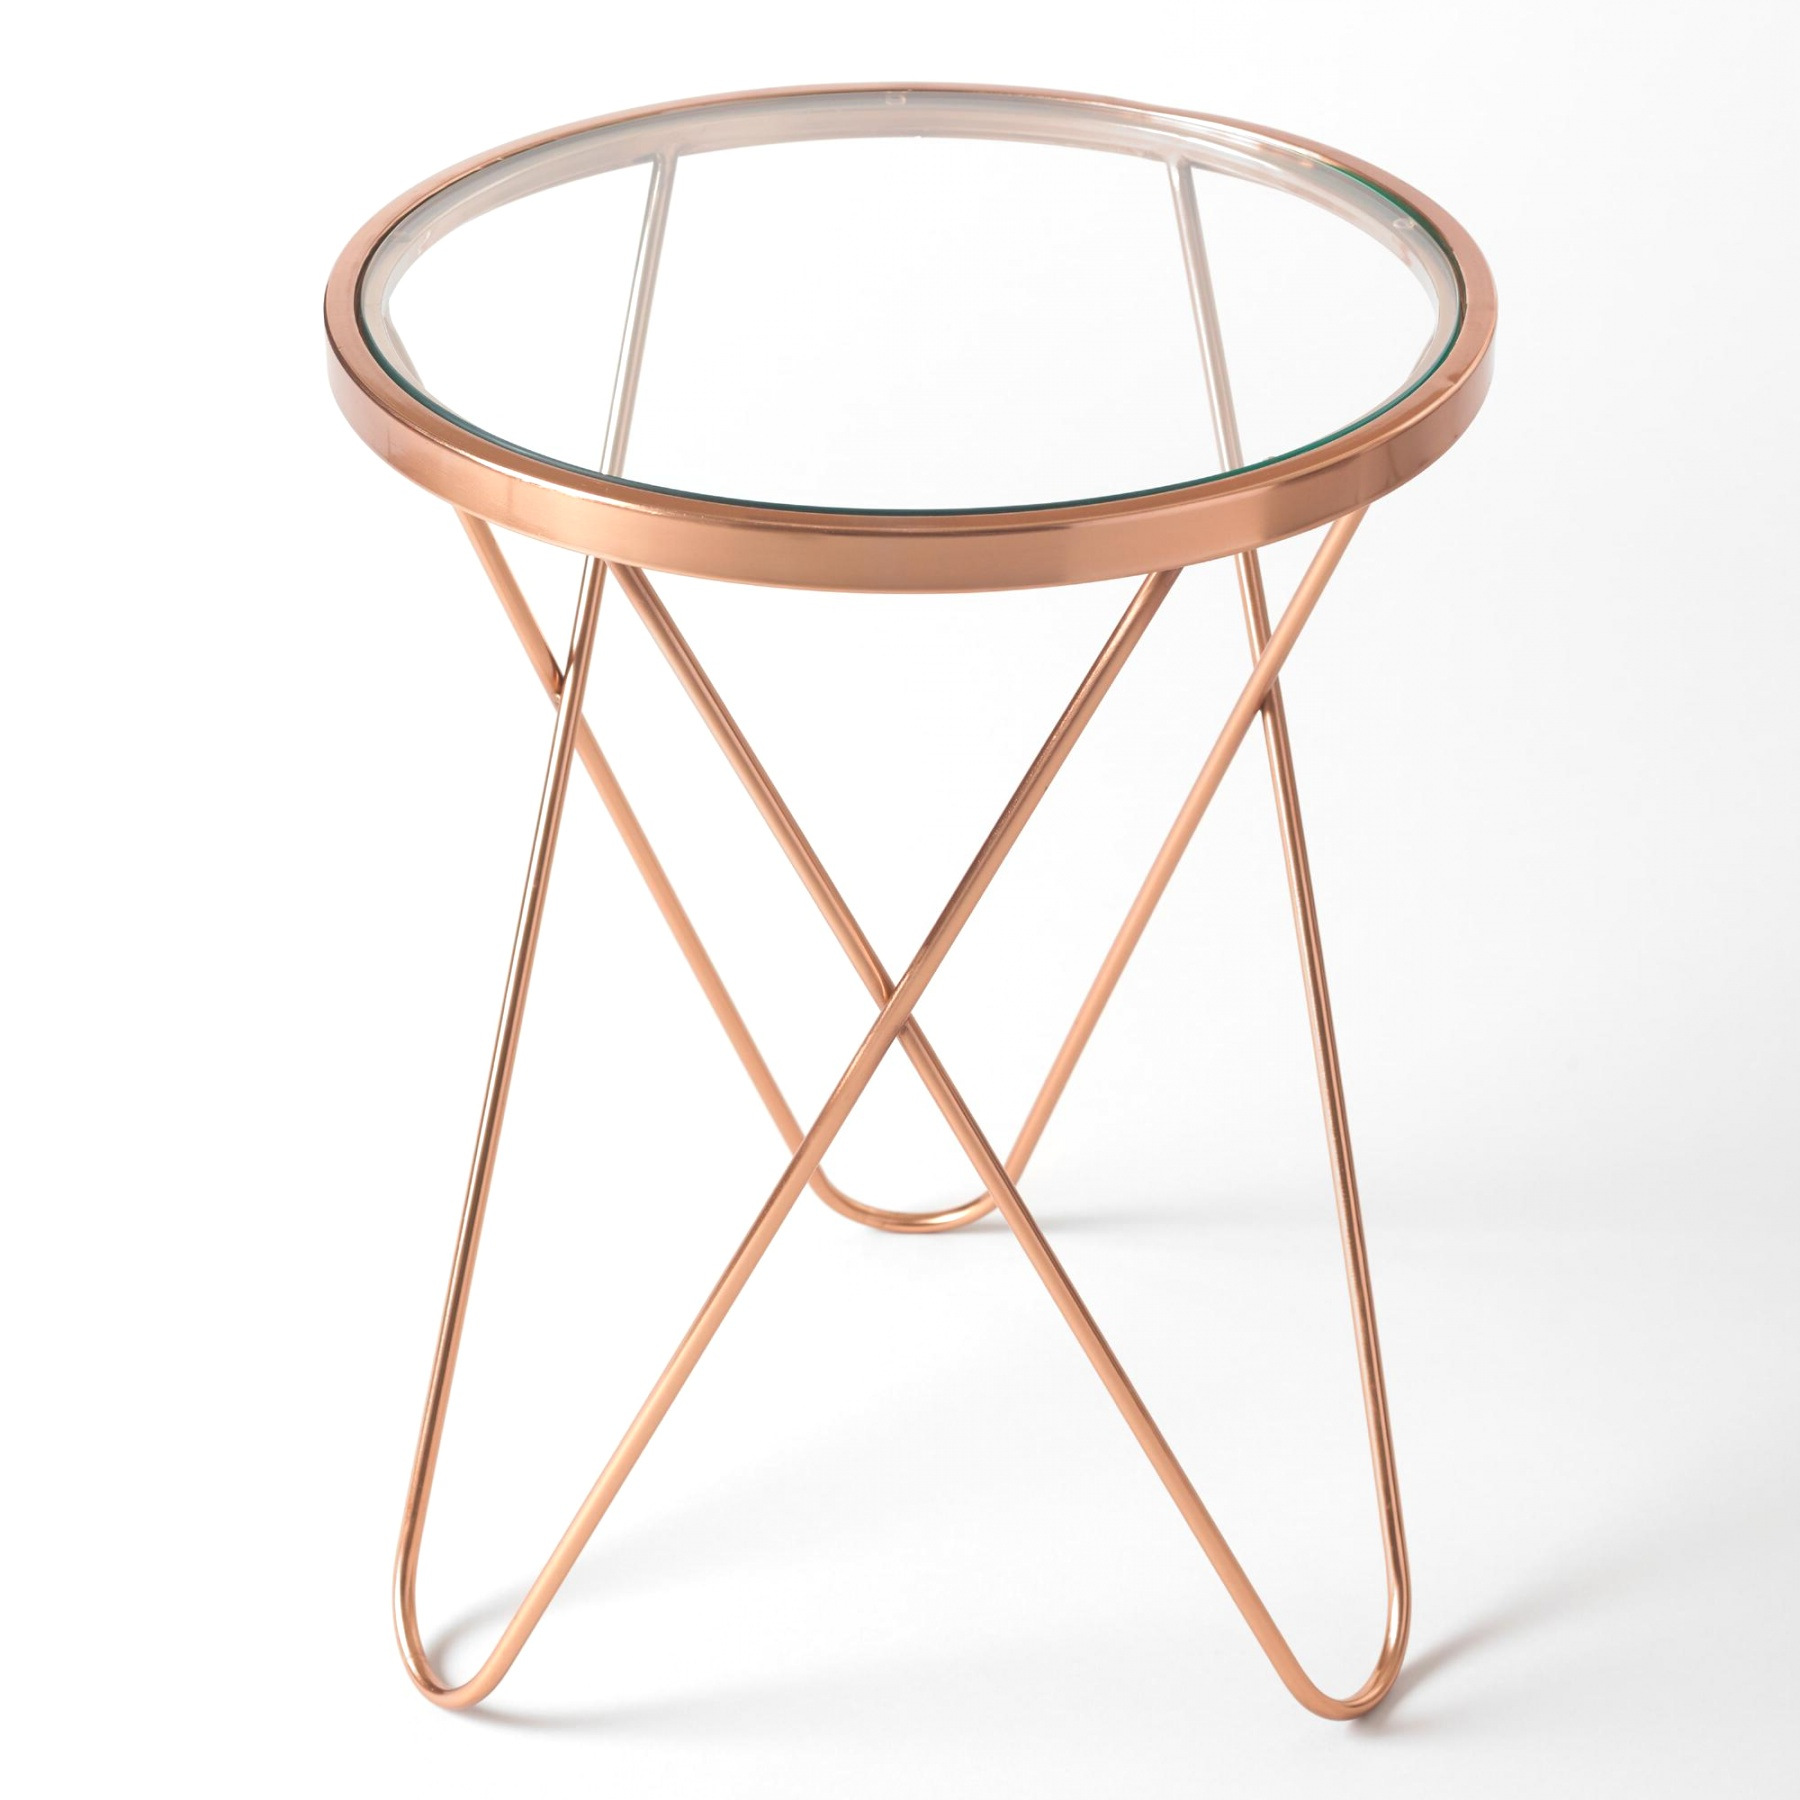 rose gold tomlin accent table with glass top hairpin mid original resolution chairs aamerica furniture home tables very narrow hall unusual bedside marble coffee outdoor covers